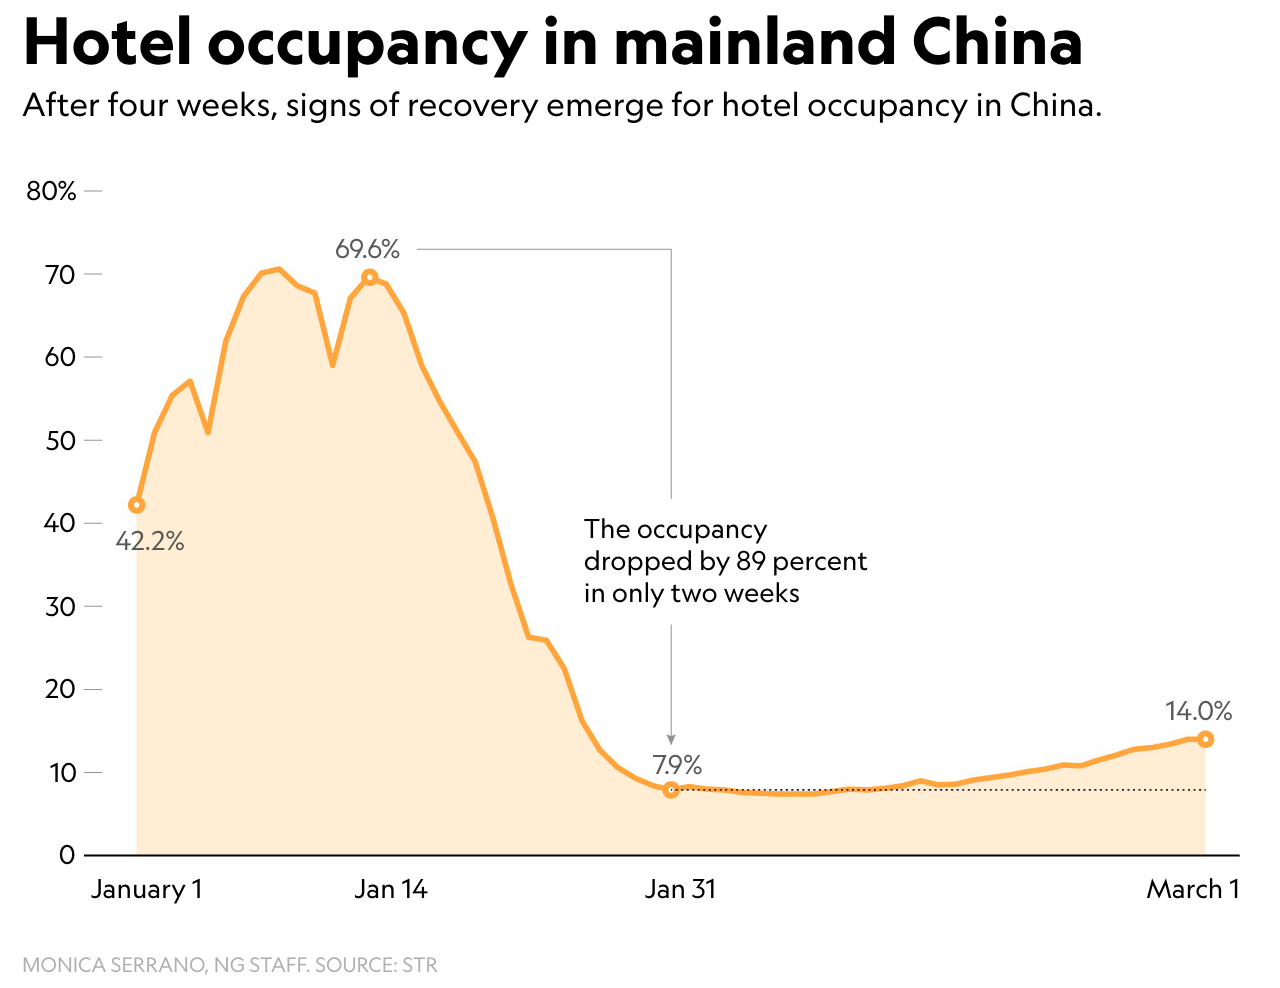 Hotel occupancy in mainland China - signs of recovery emerge for hotel occupancy in 4 weeks